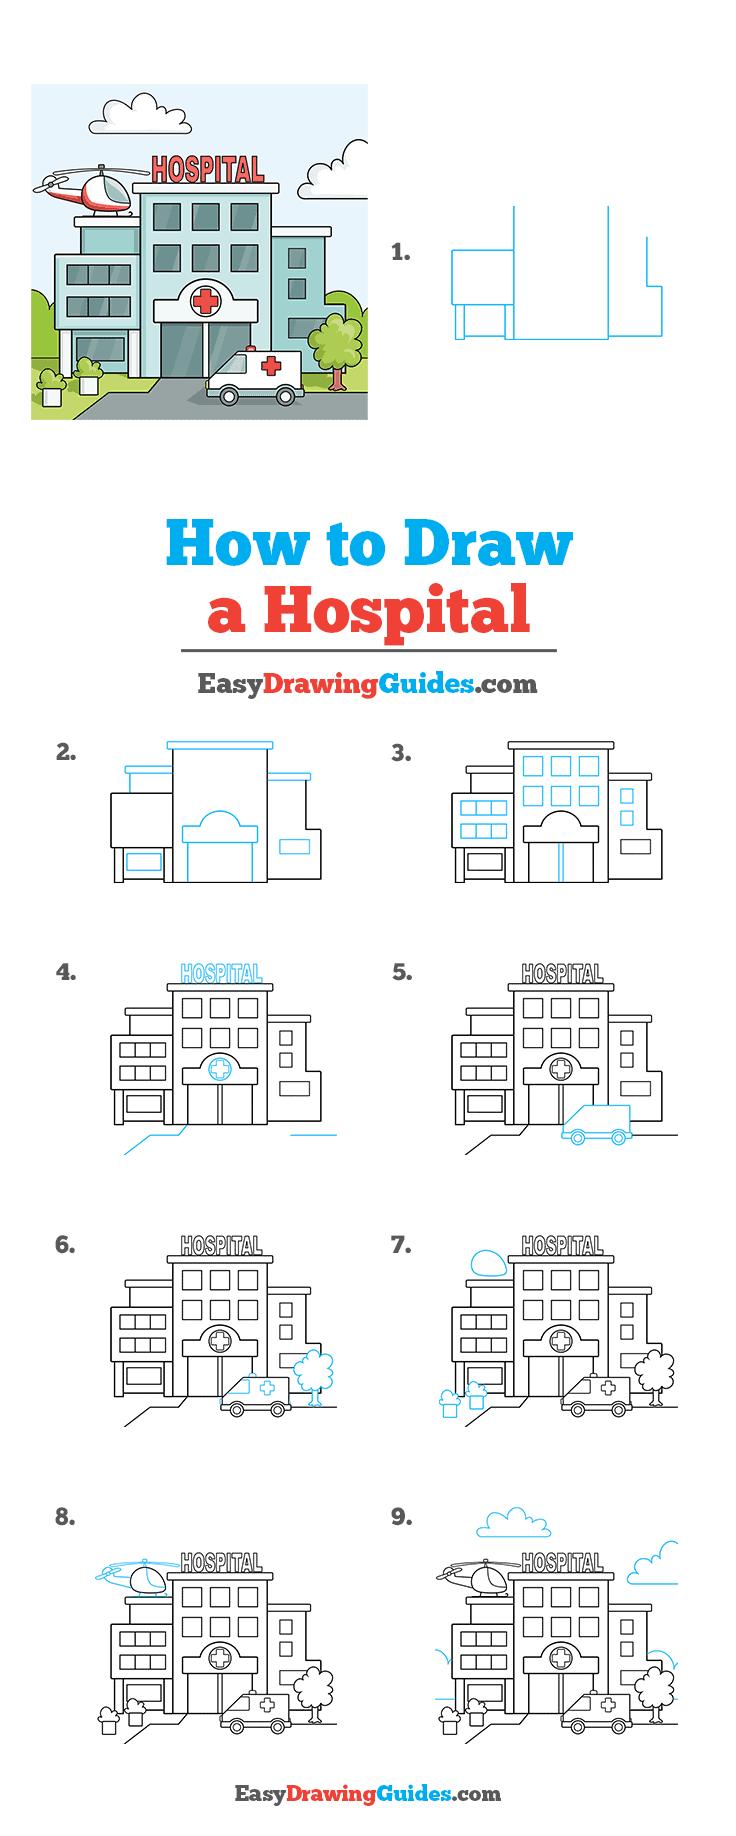 How to Draw a Hospital Step by Step Tutorial Image